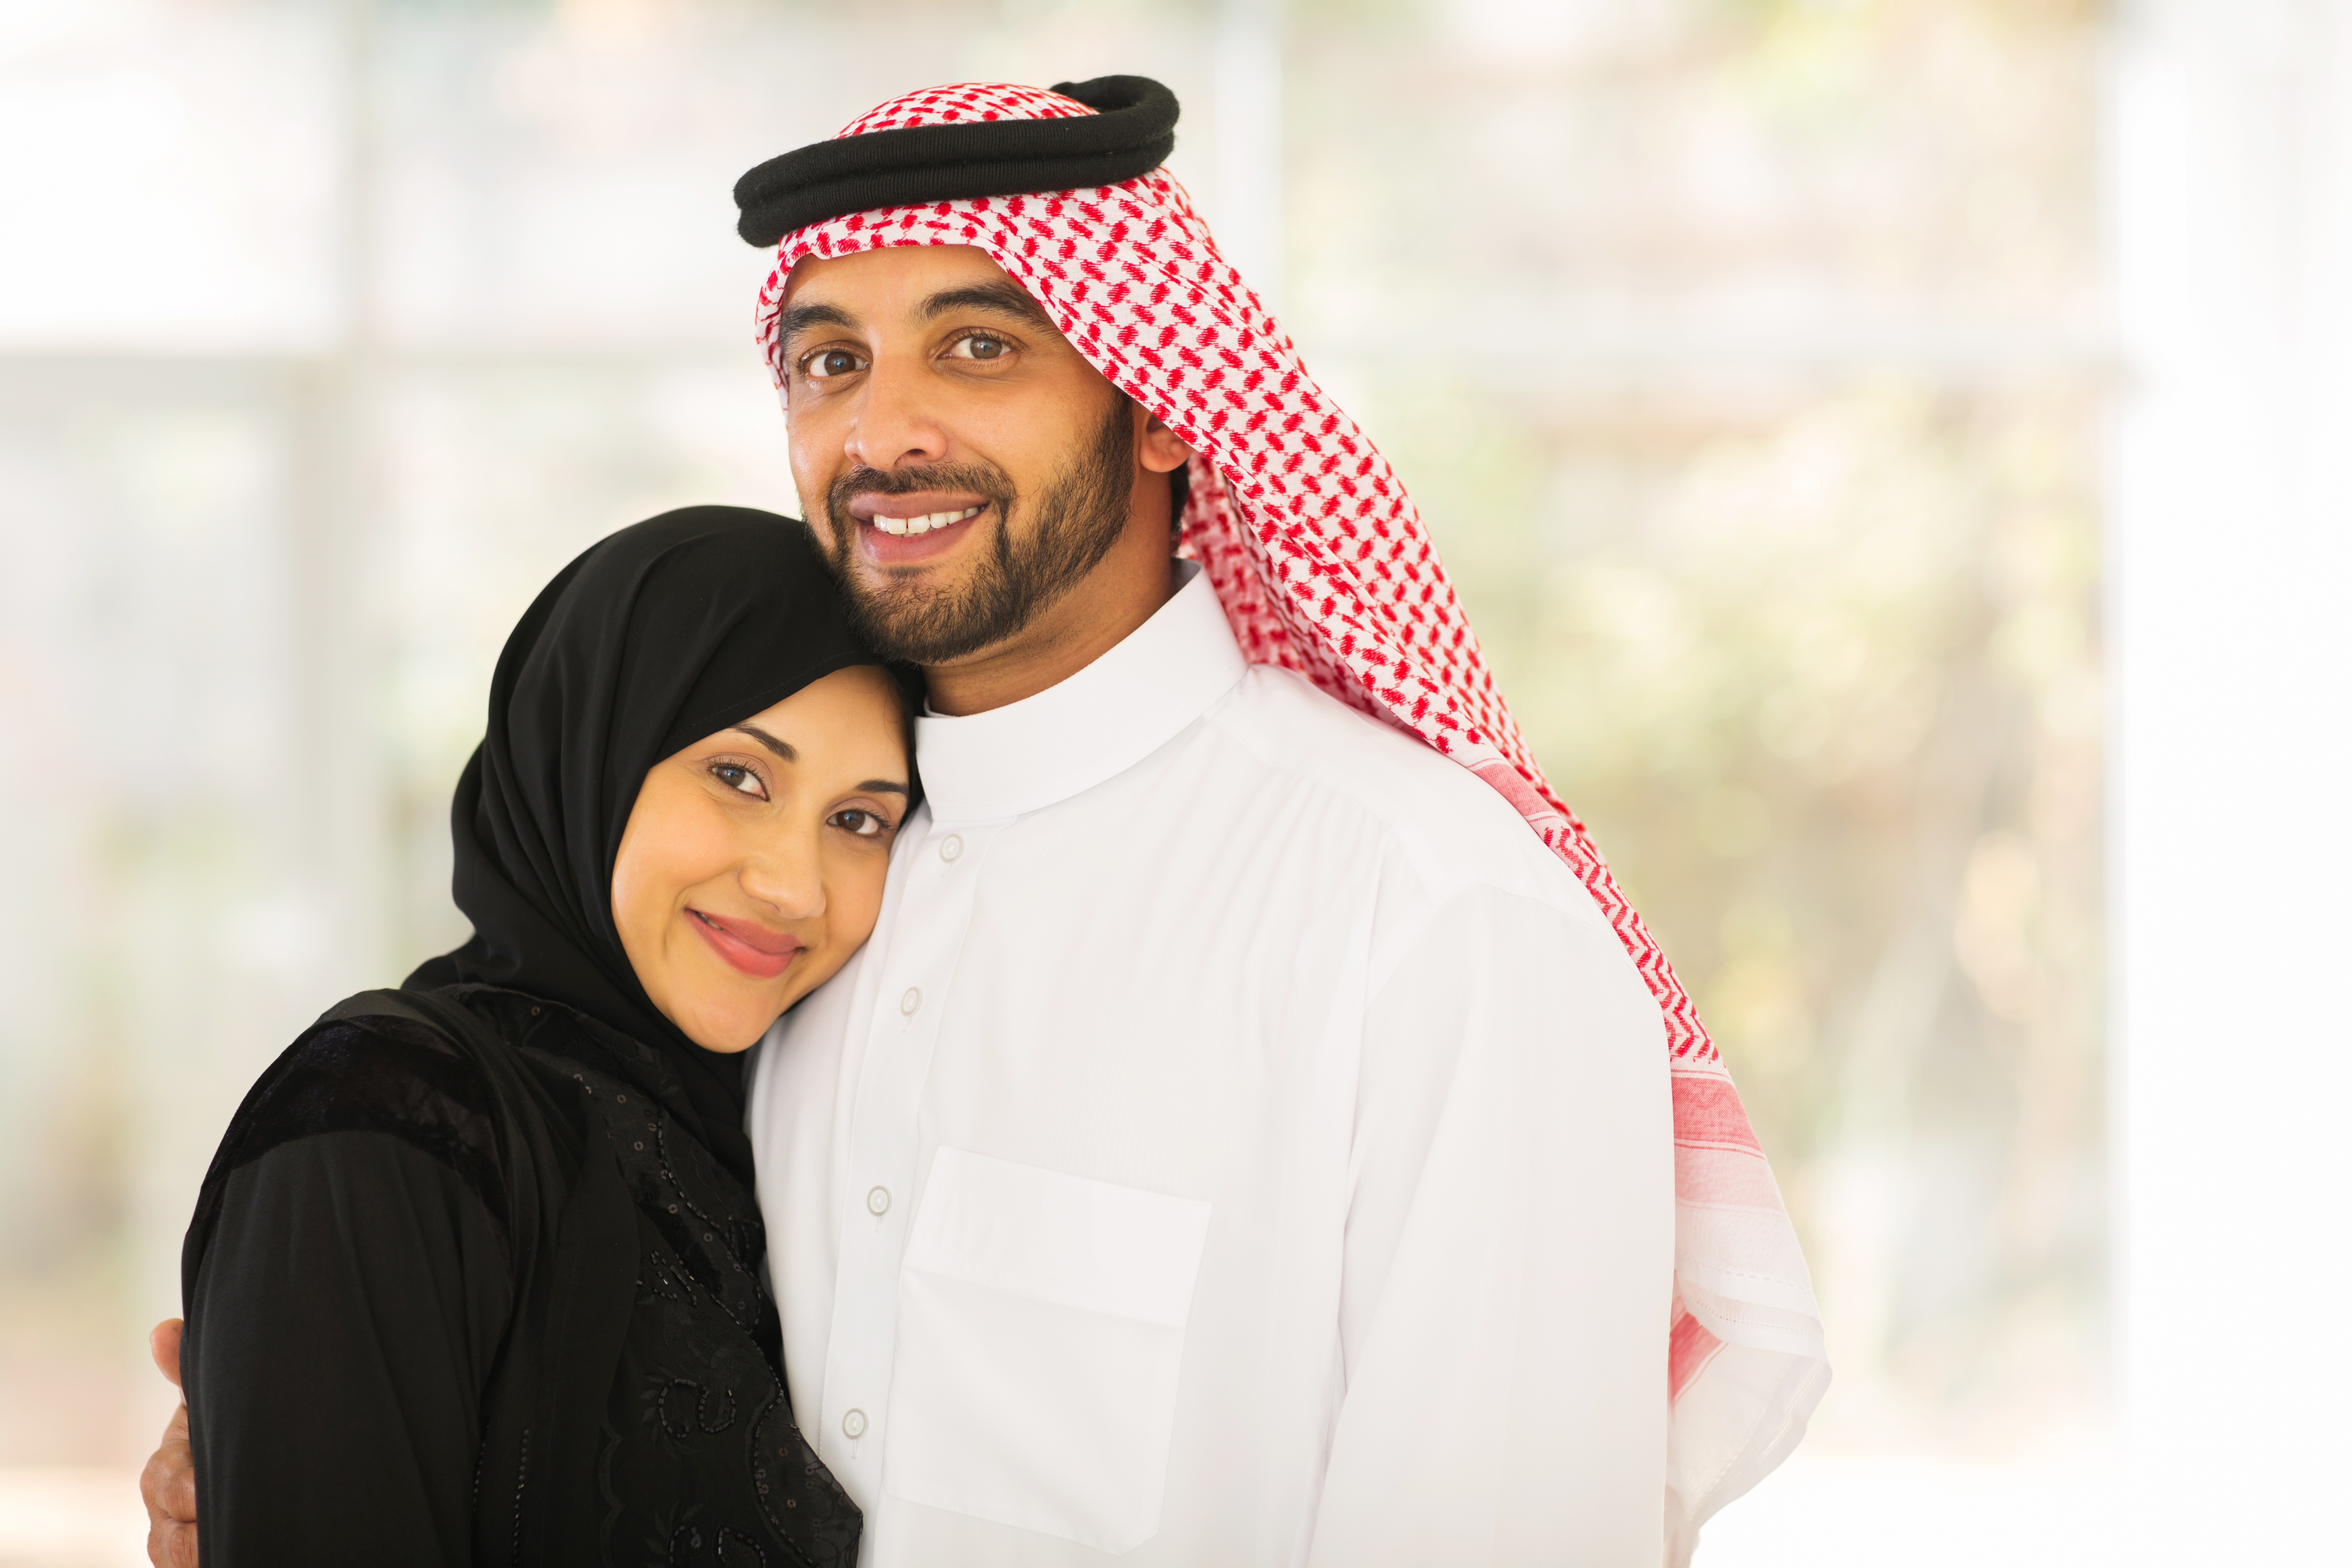 south newfane muslim personals South newfane senior dating in vermont there is a bear in my yard - yes i live in the woods and love it very happy healthy and financially secure.